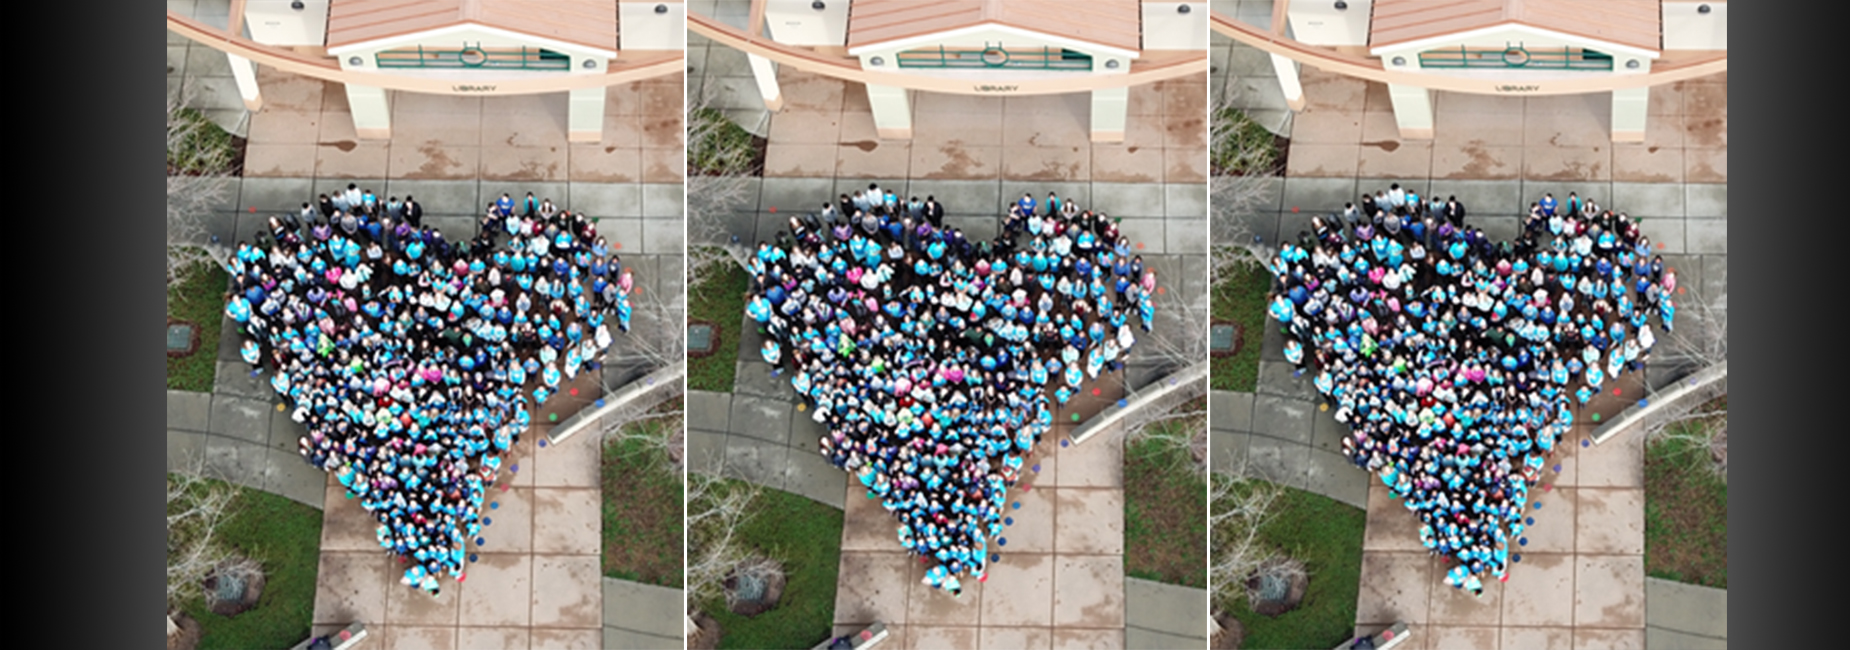 Kindness Day, arial view of kids in heart shape